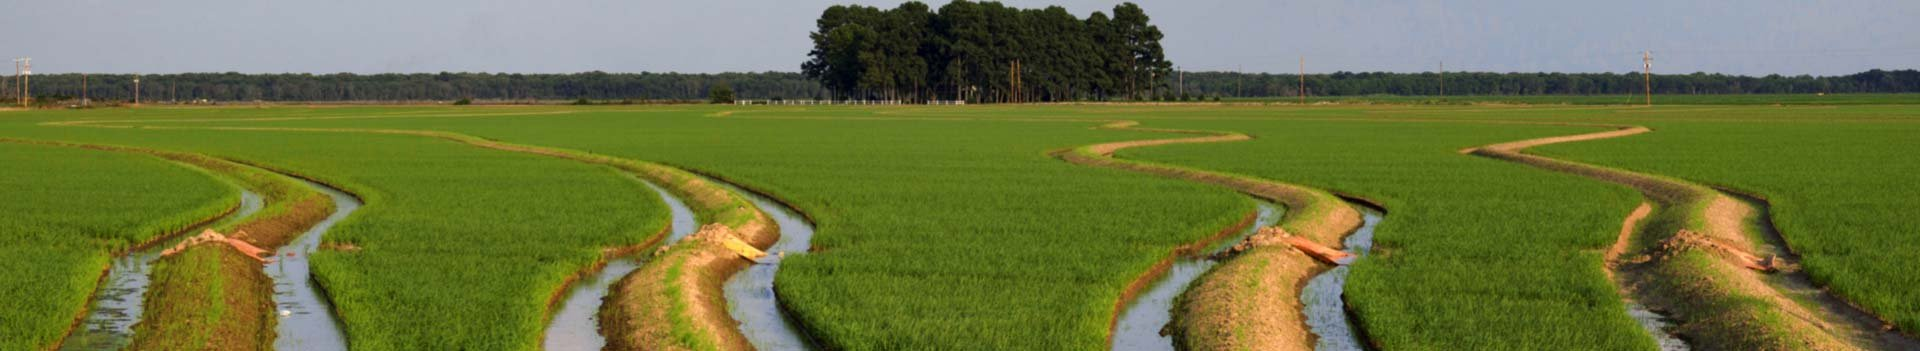 Rice fields of Cross County, Arkansas